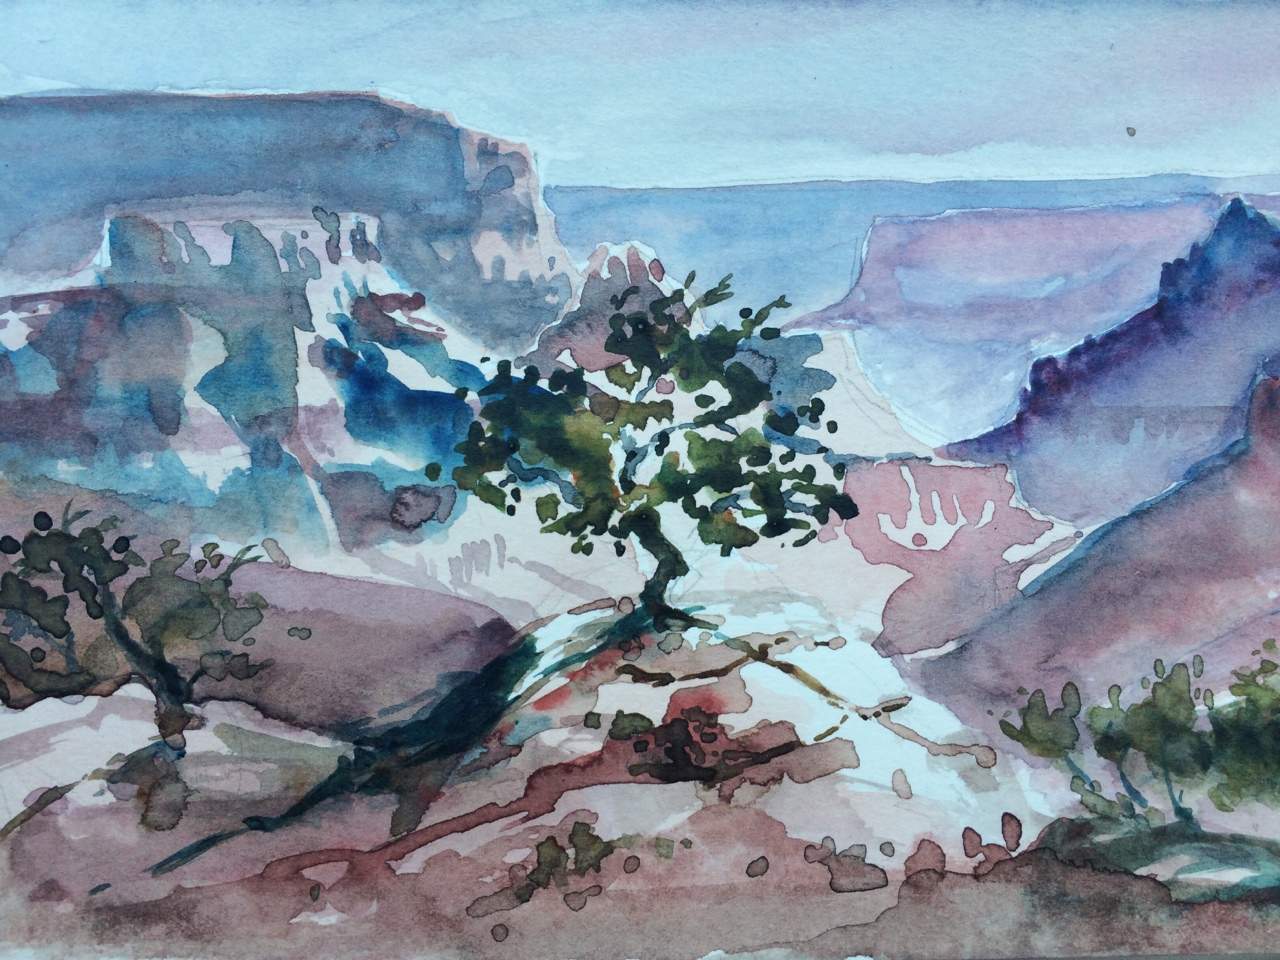 097-sapling_of_the_grand_canyon.jpg